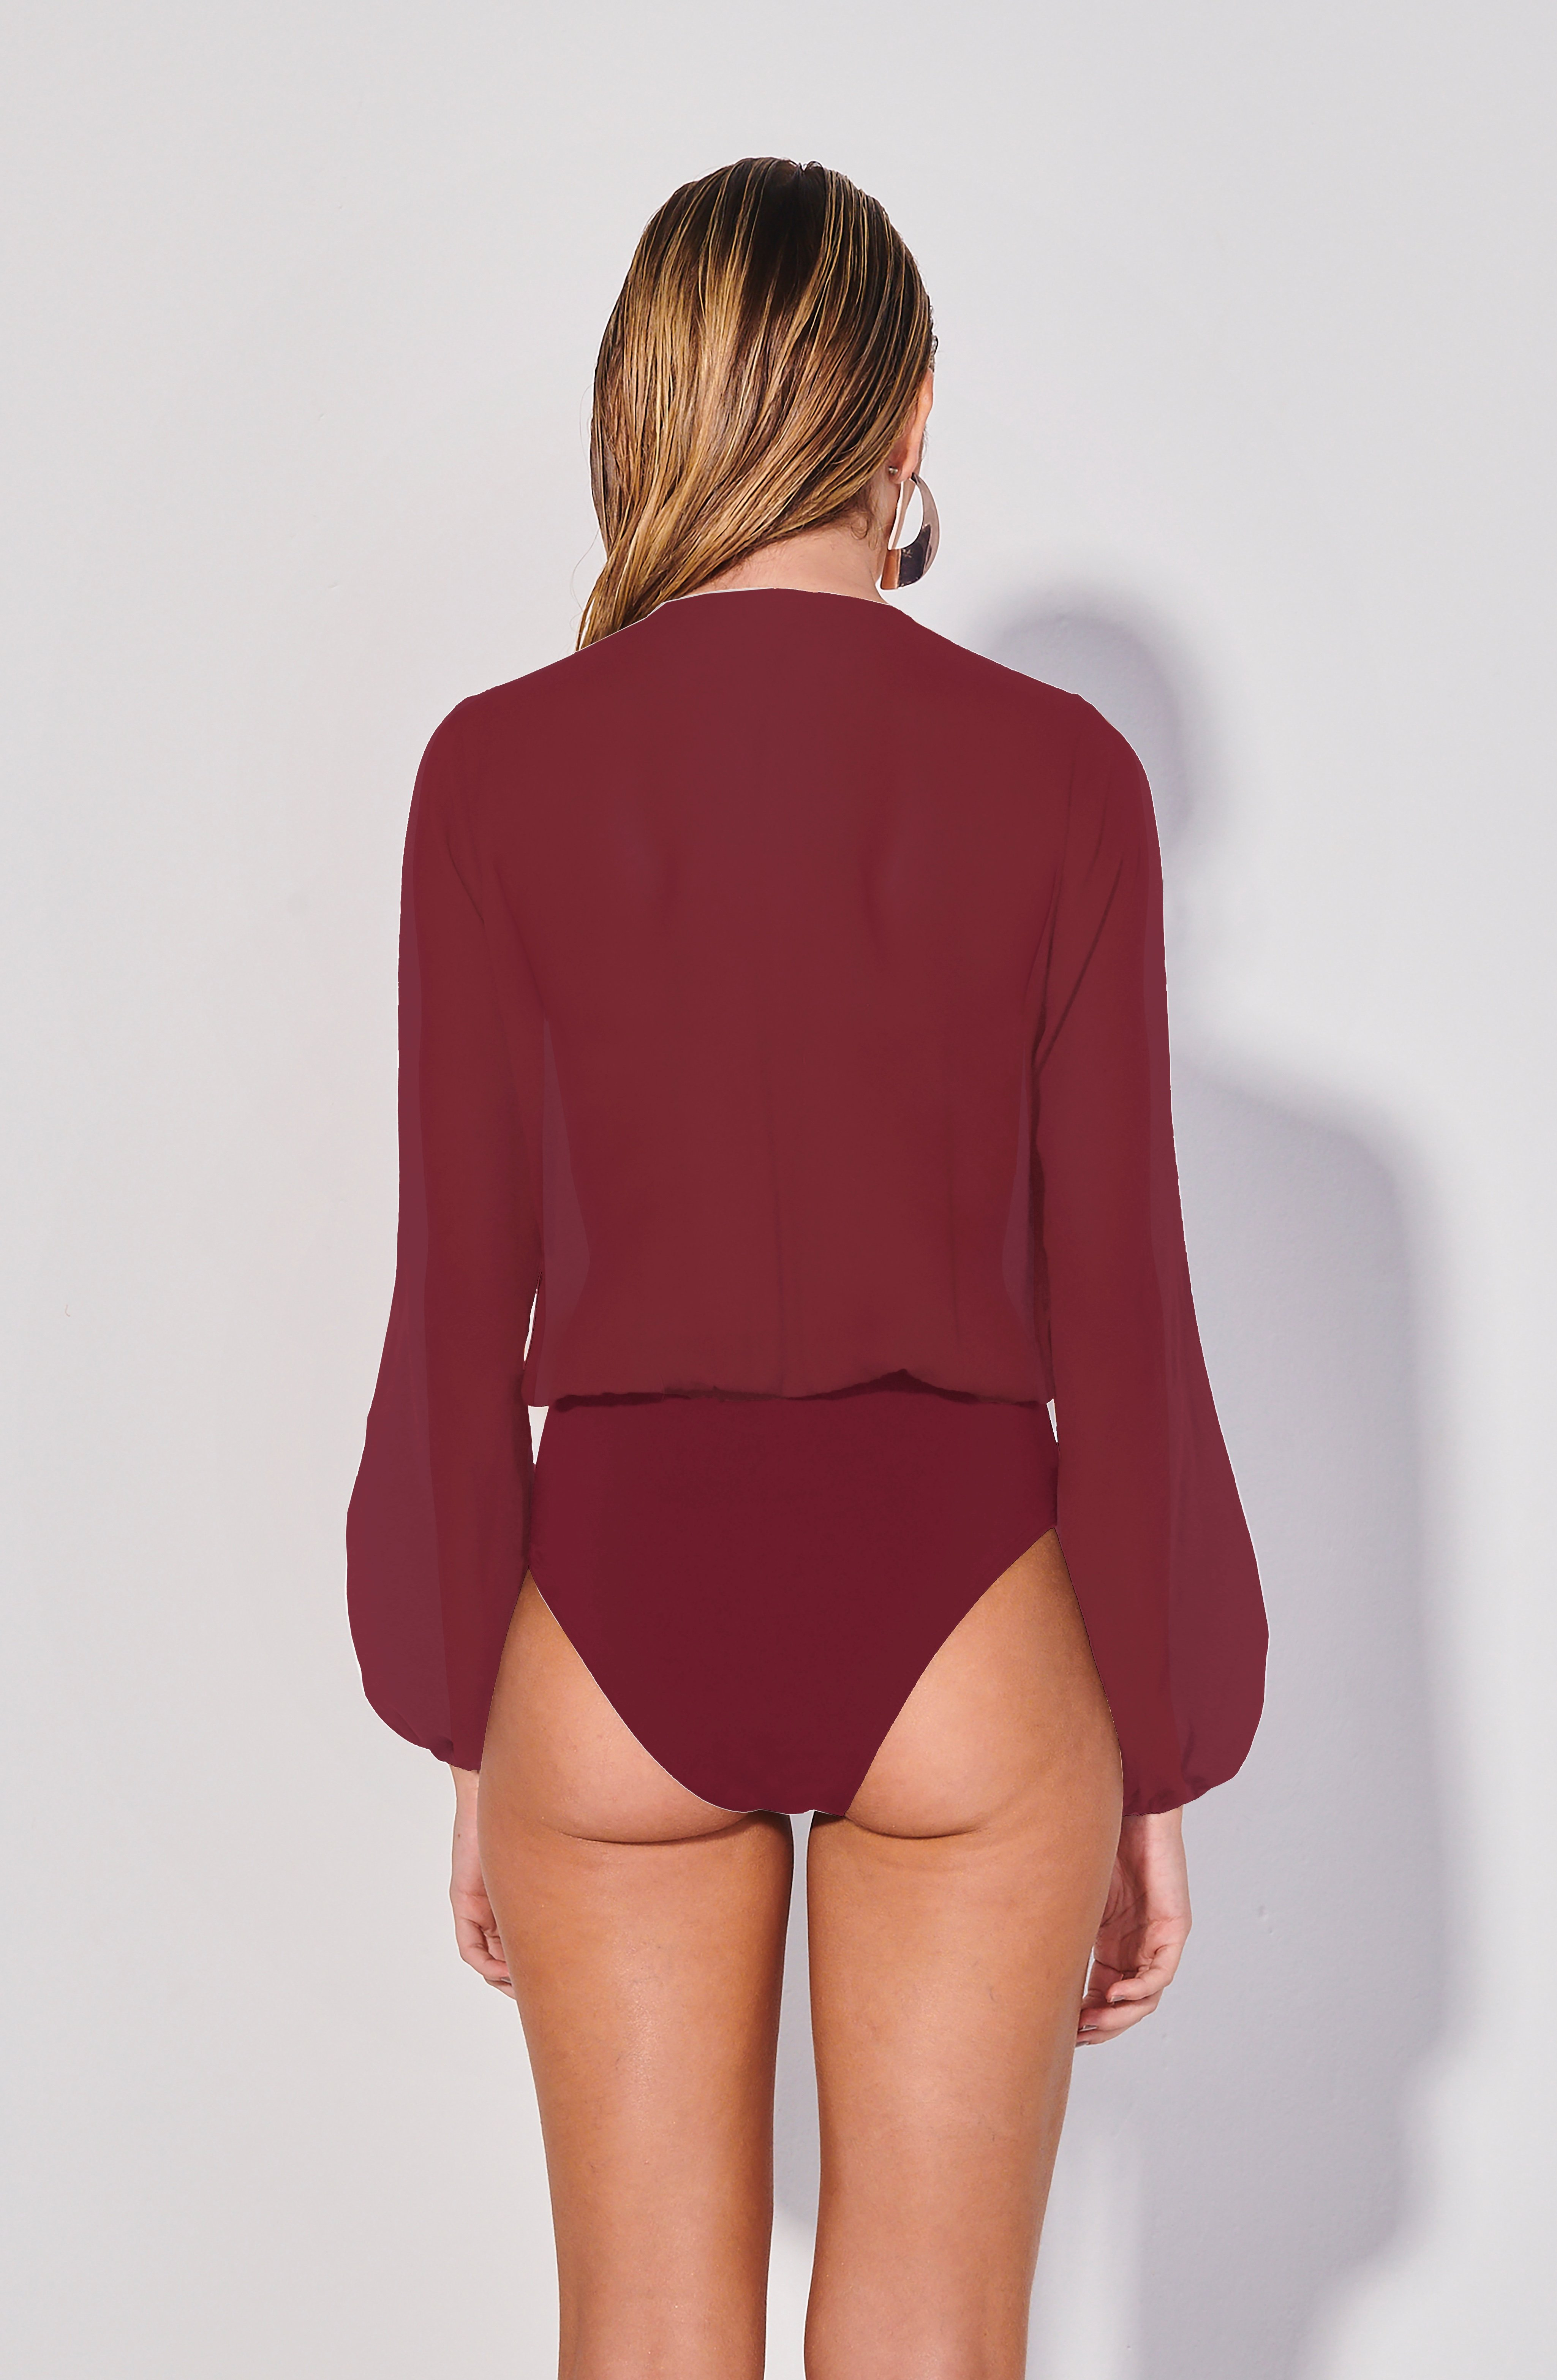 Body Camisa Alumi Vinho | Alumi Blouse One-Piece Burgundy